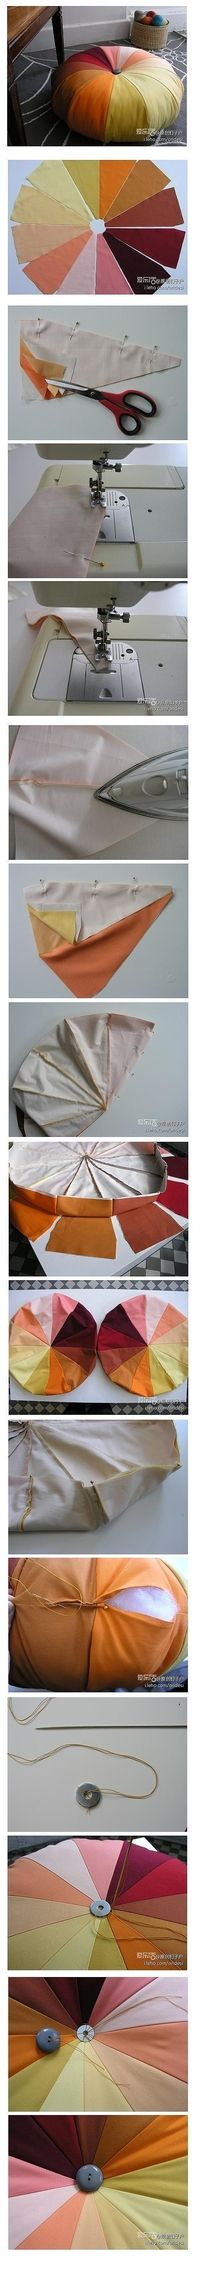 Lovely step-by-step pouf making guide